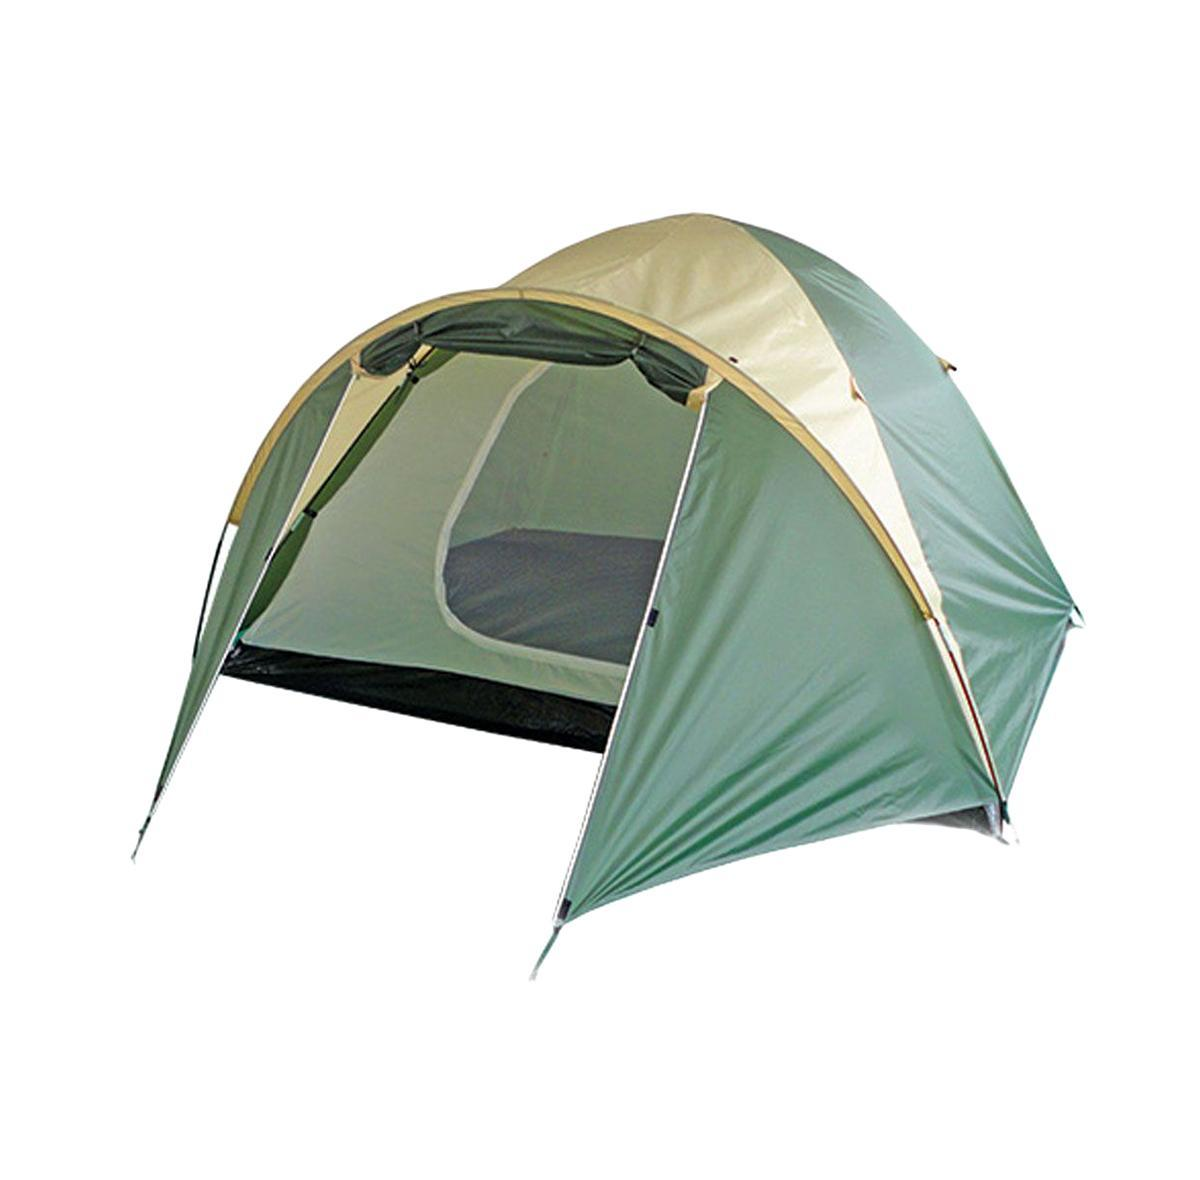 Палатка Happy Camper PL-025-4P палатки greenell палатка дом 2